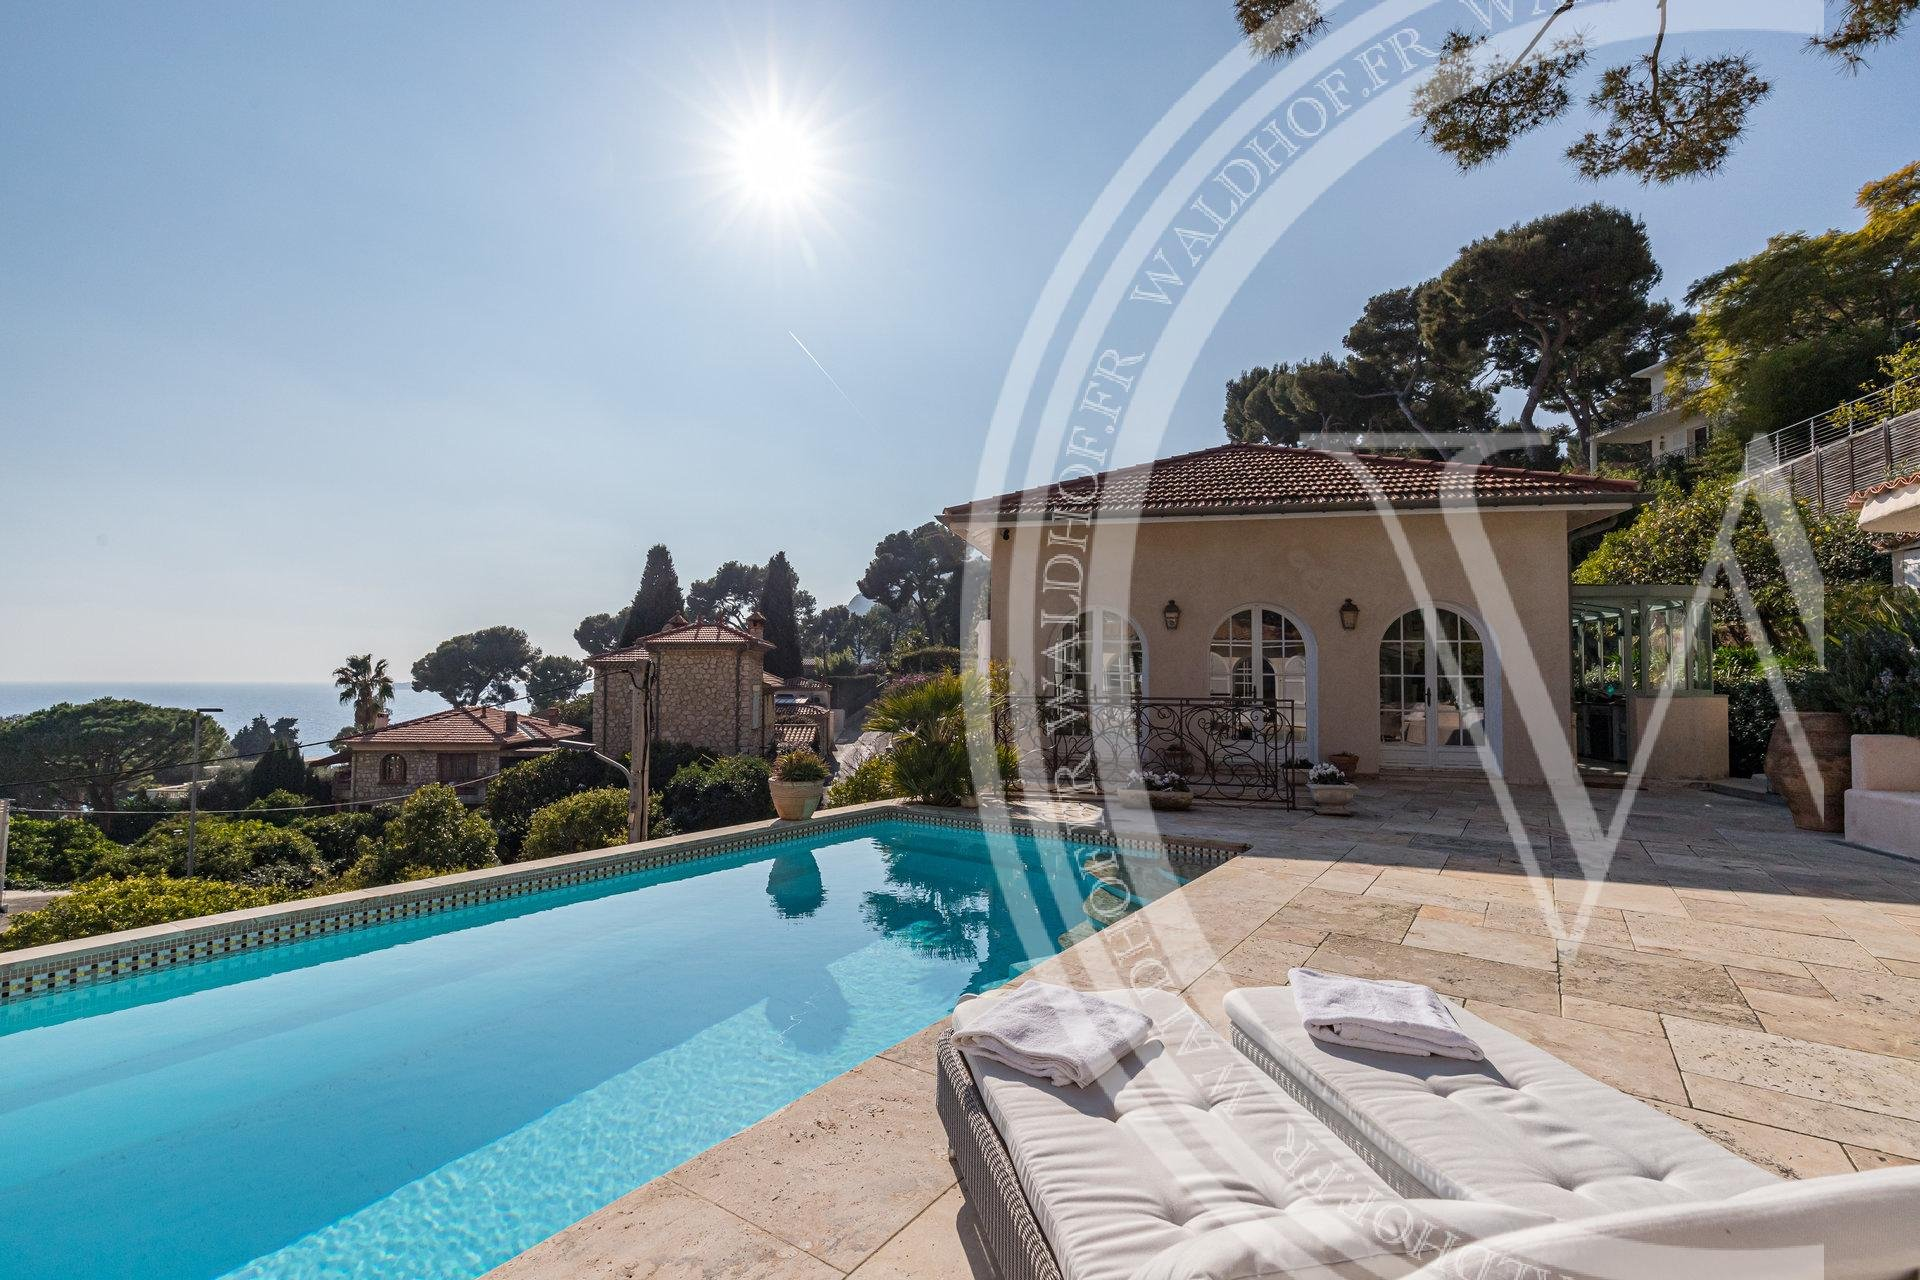 Romantic Provencal villa 5 minutes walk from the beaches